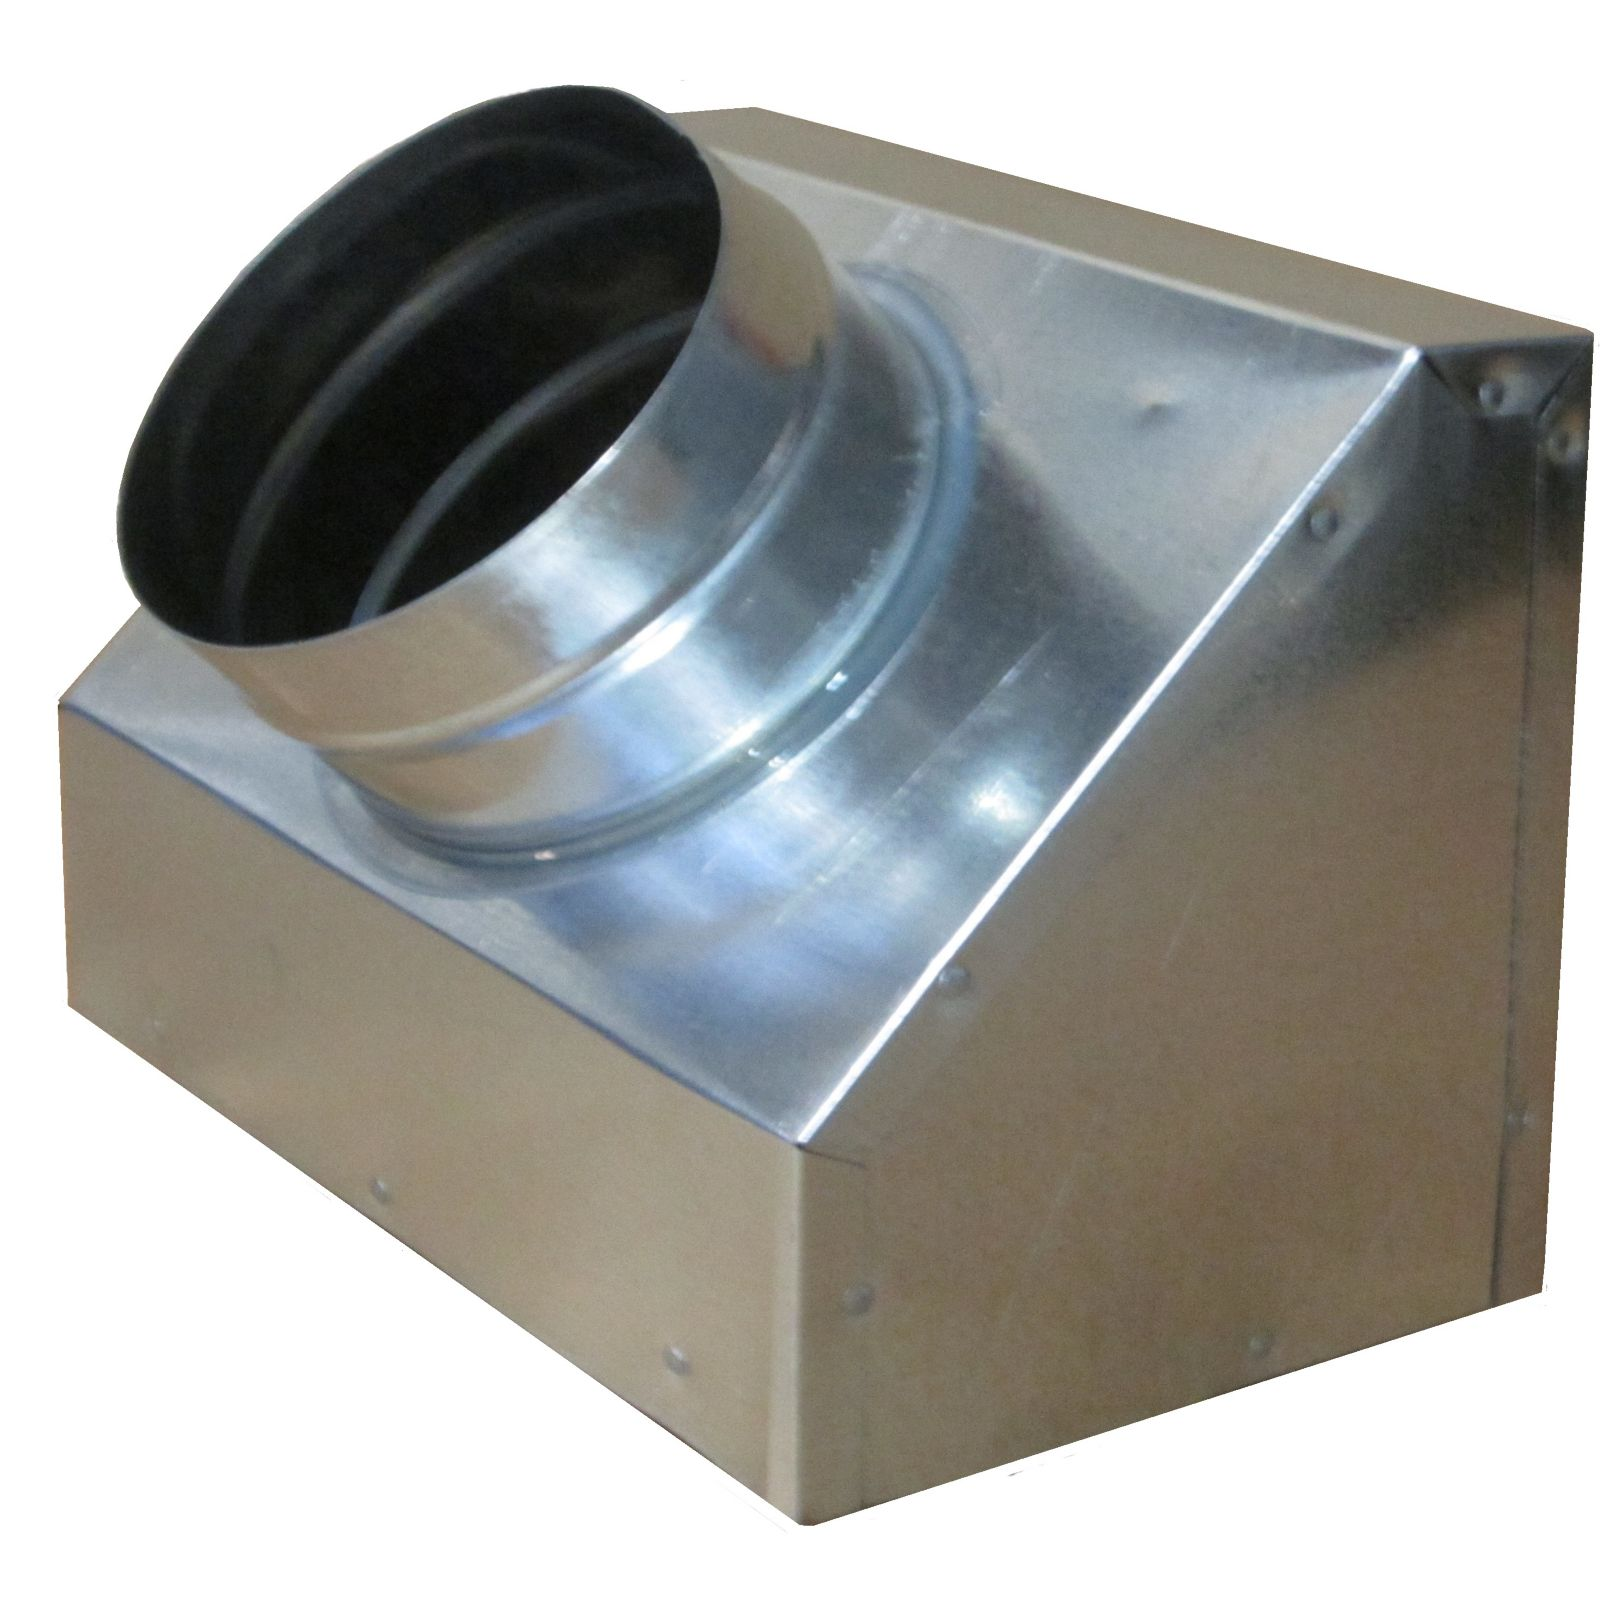 "Snap-Rite 10X06X073685FS - Insulated 45a° Slant Register Box, With Flange, 8 1/2"" Deep, 10"" x 6"" x 7"" - R6"